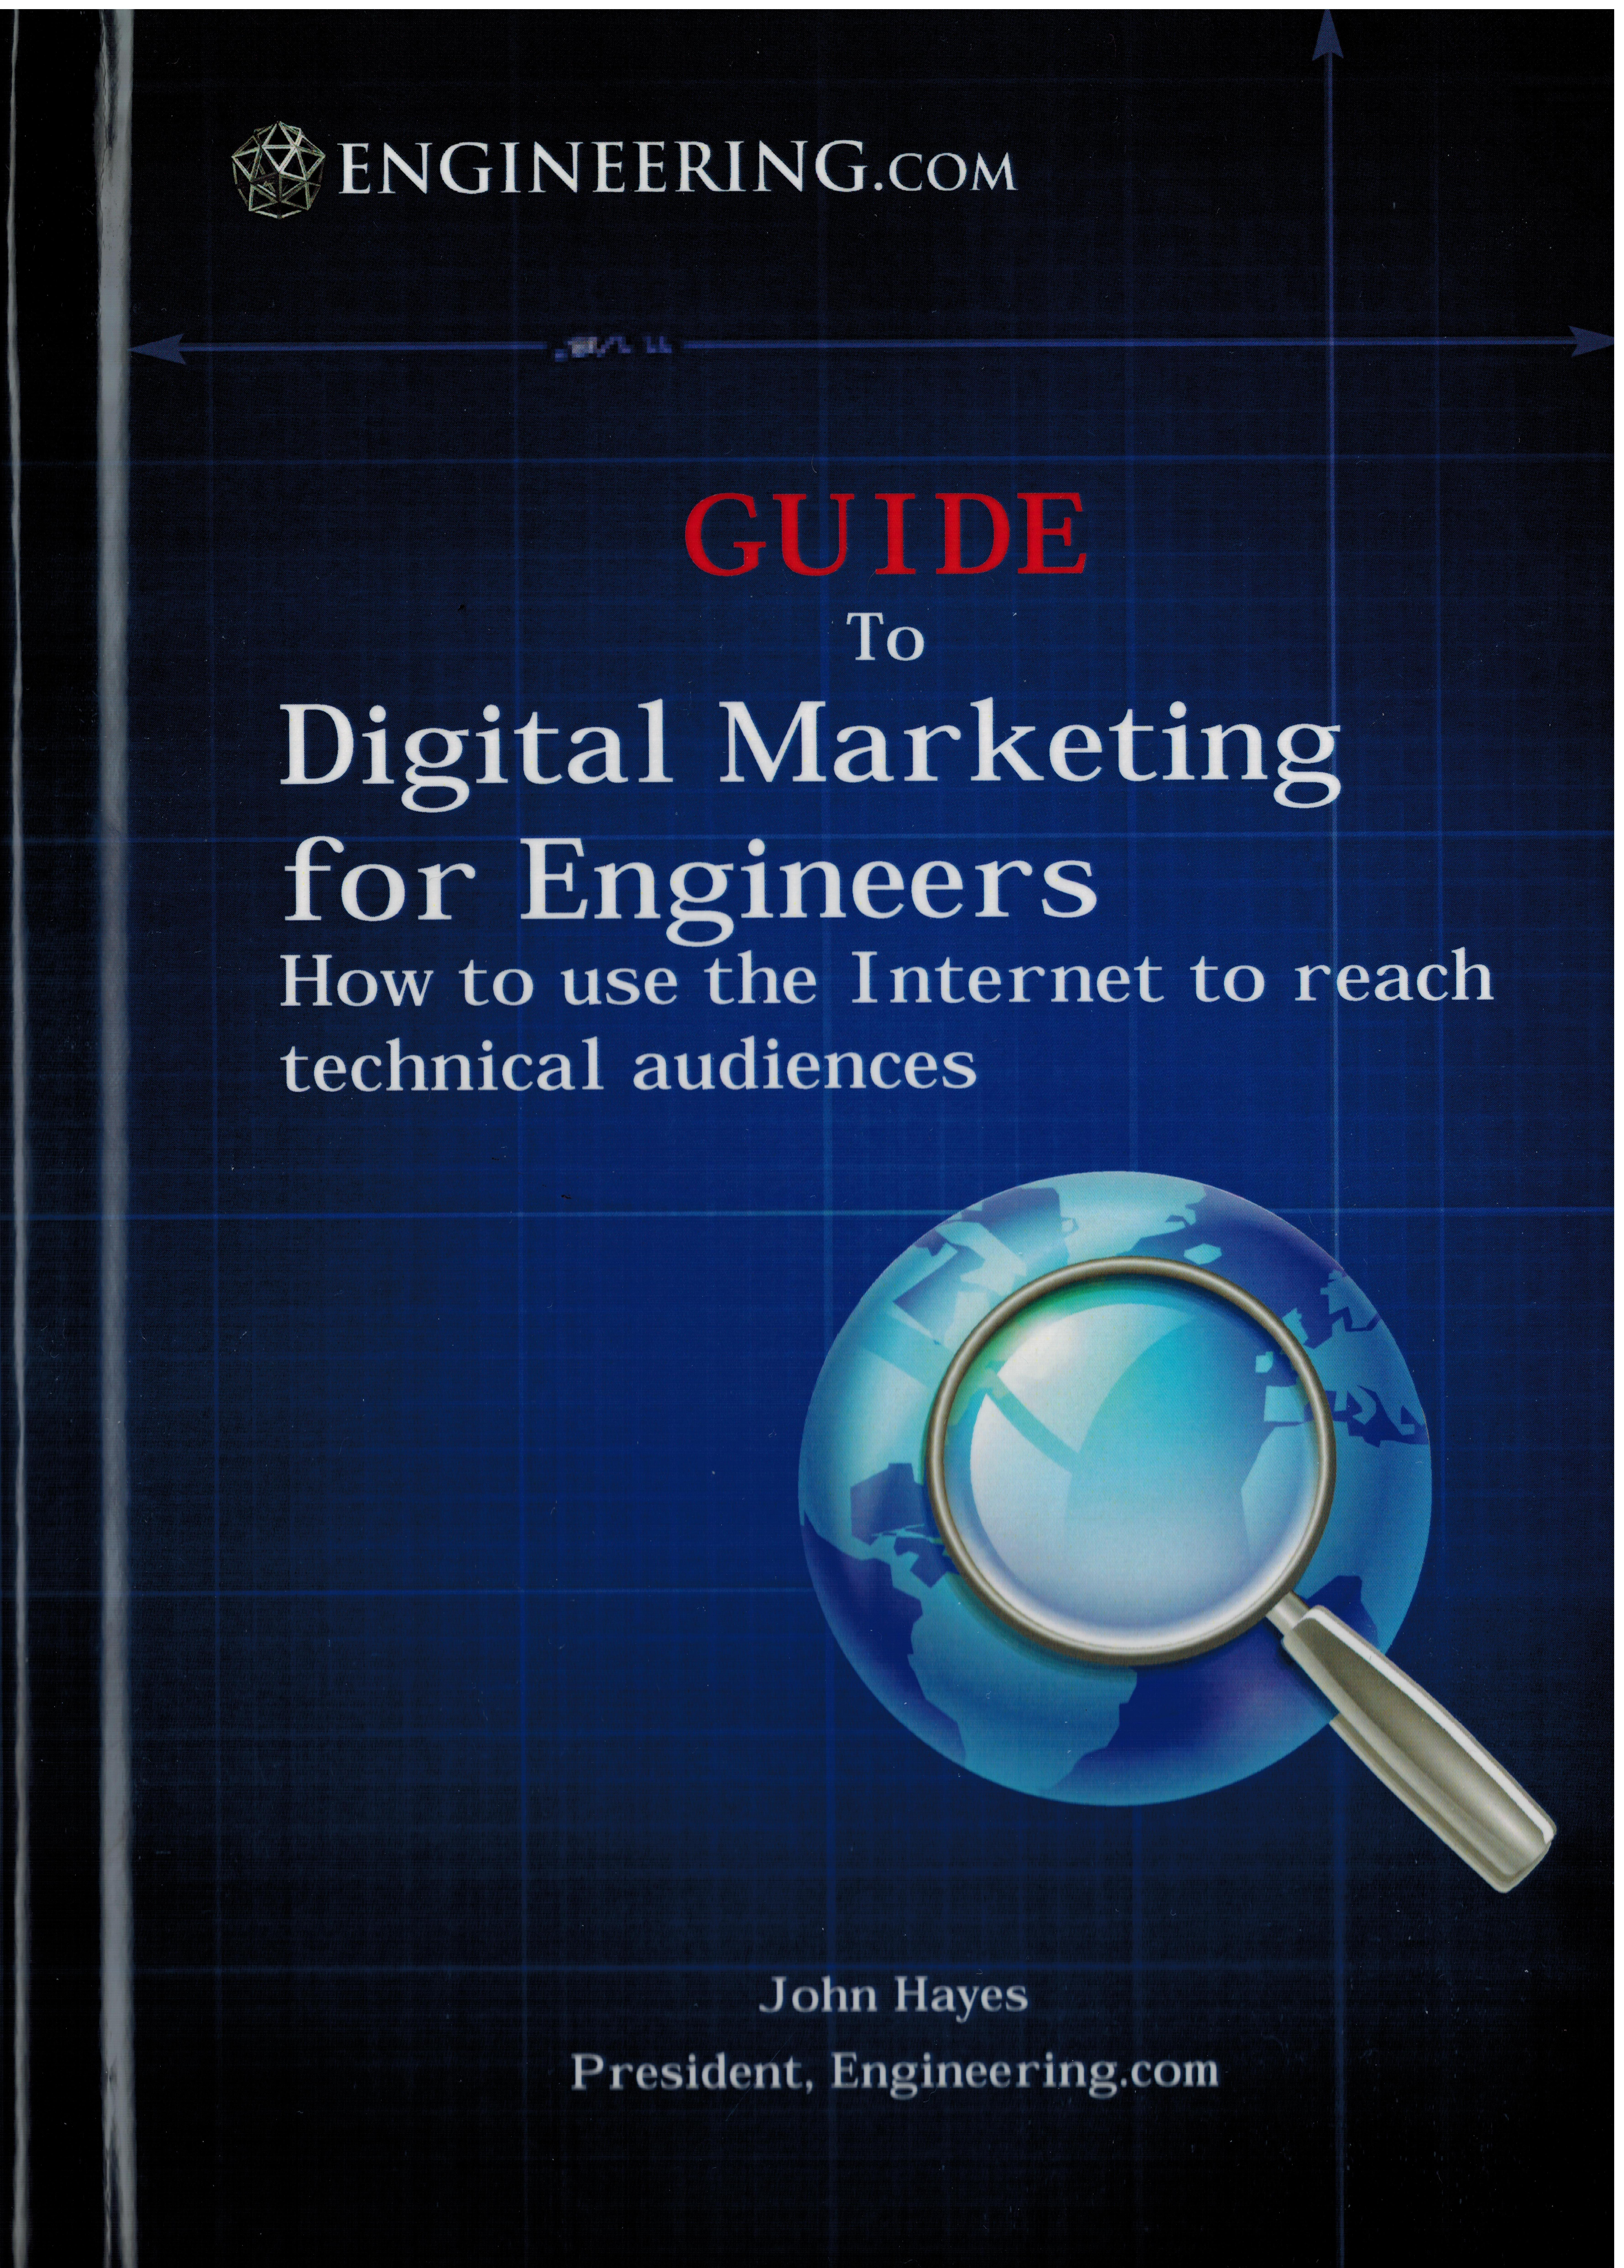 Guide to Digital Marketing Cover